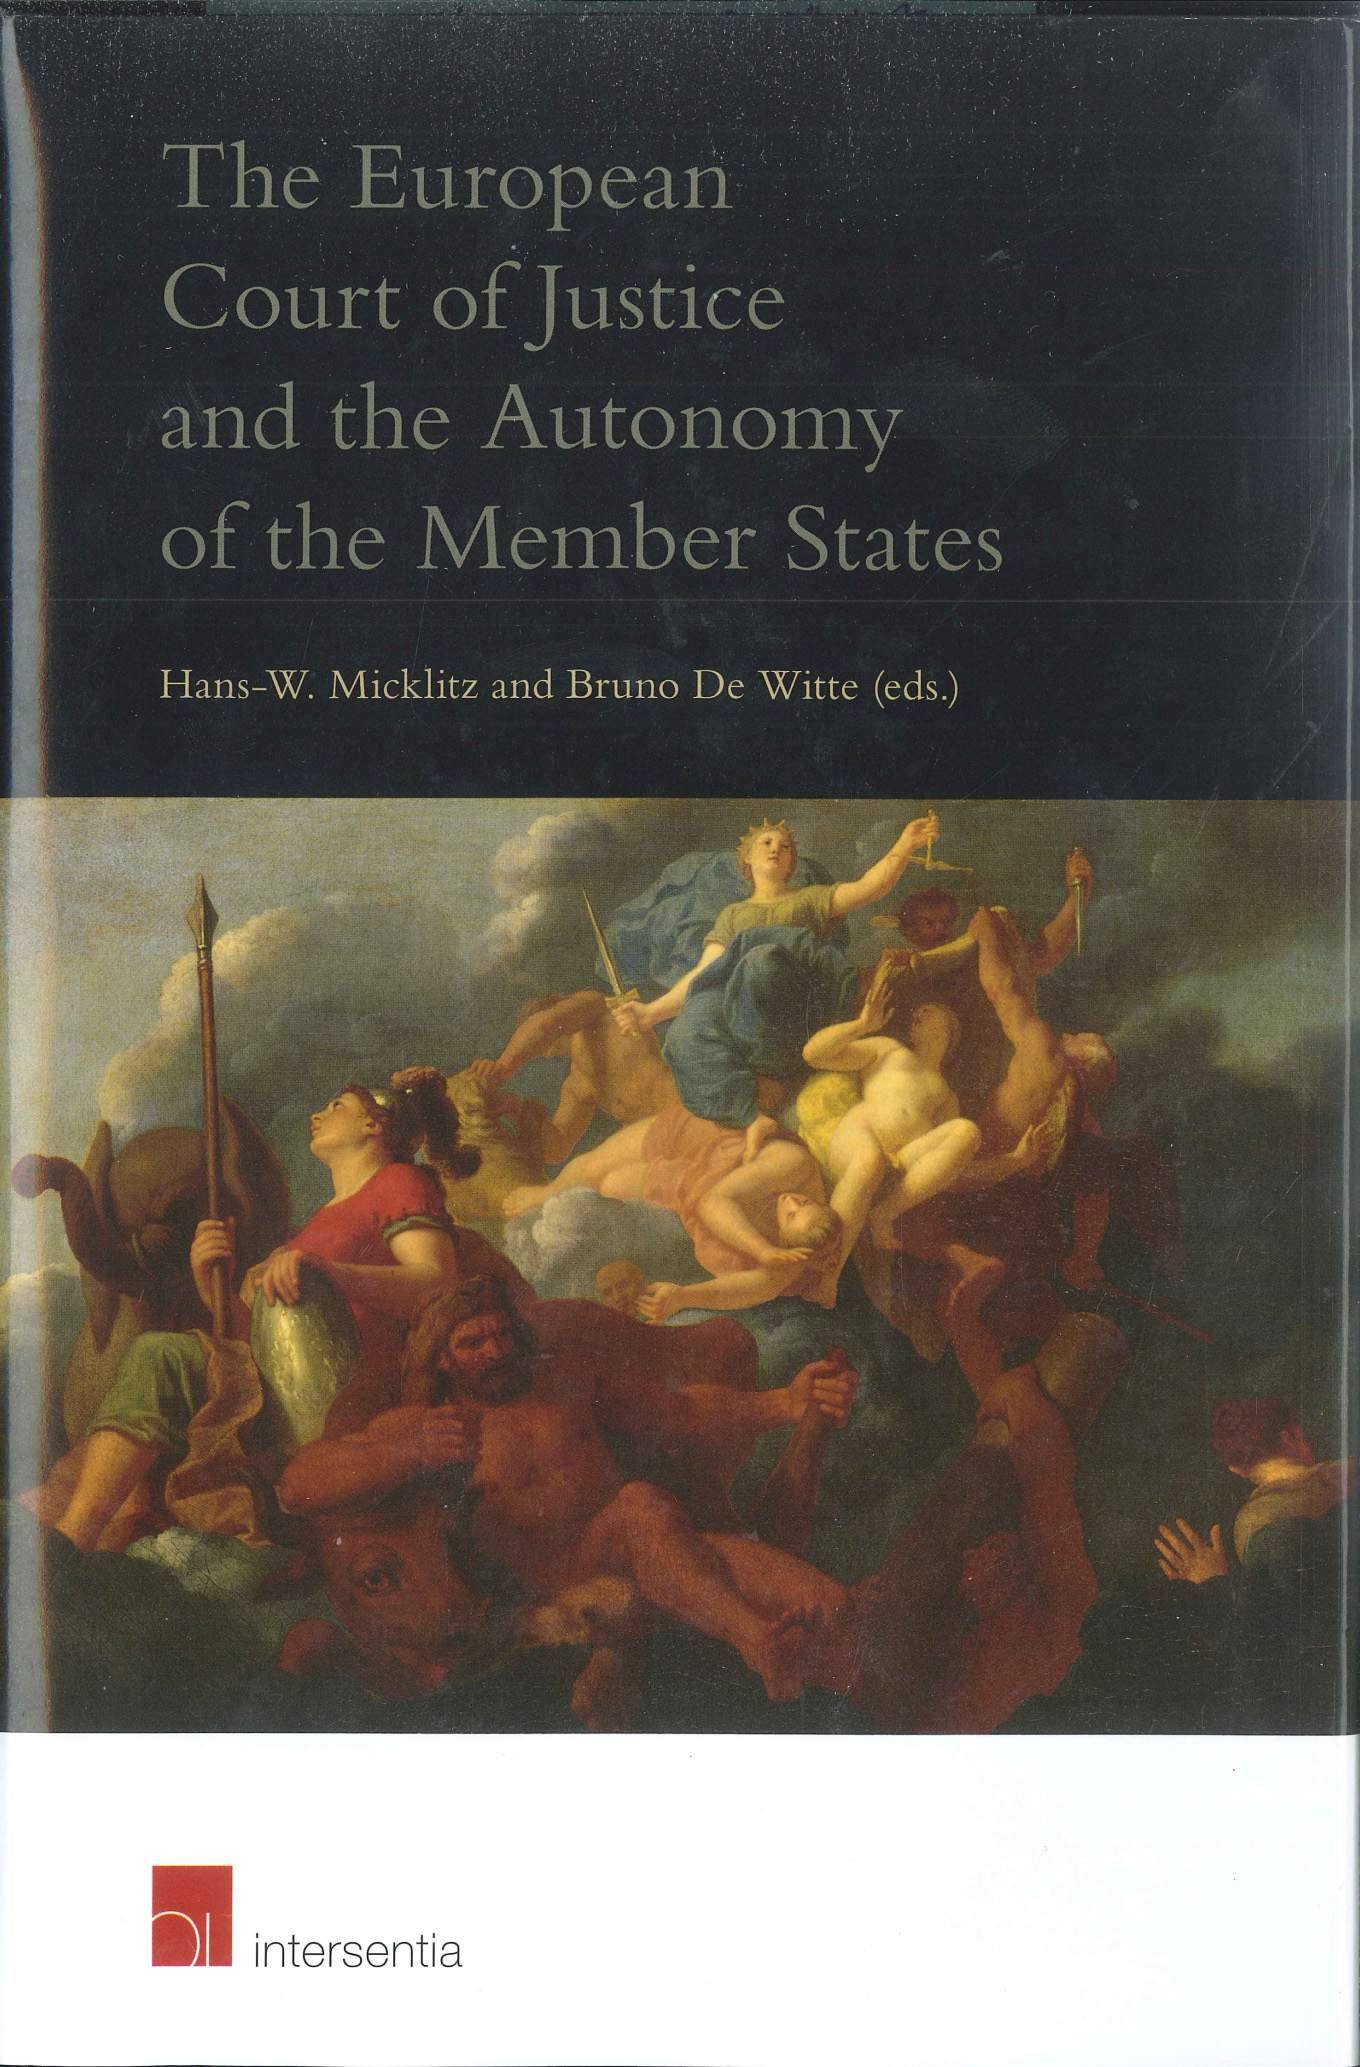 The European Court of Justice and the Autonomy of the Member States